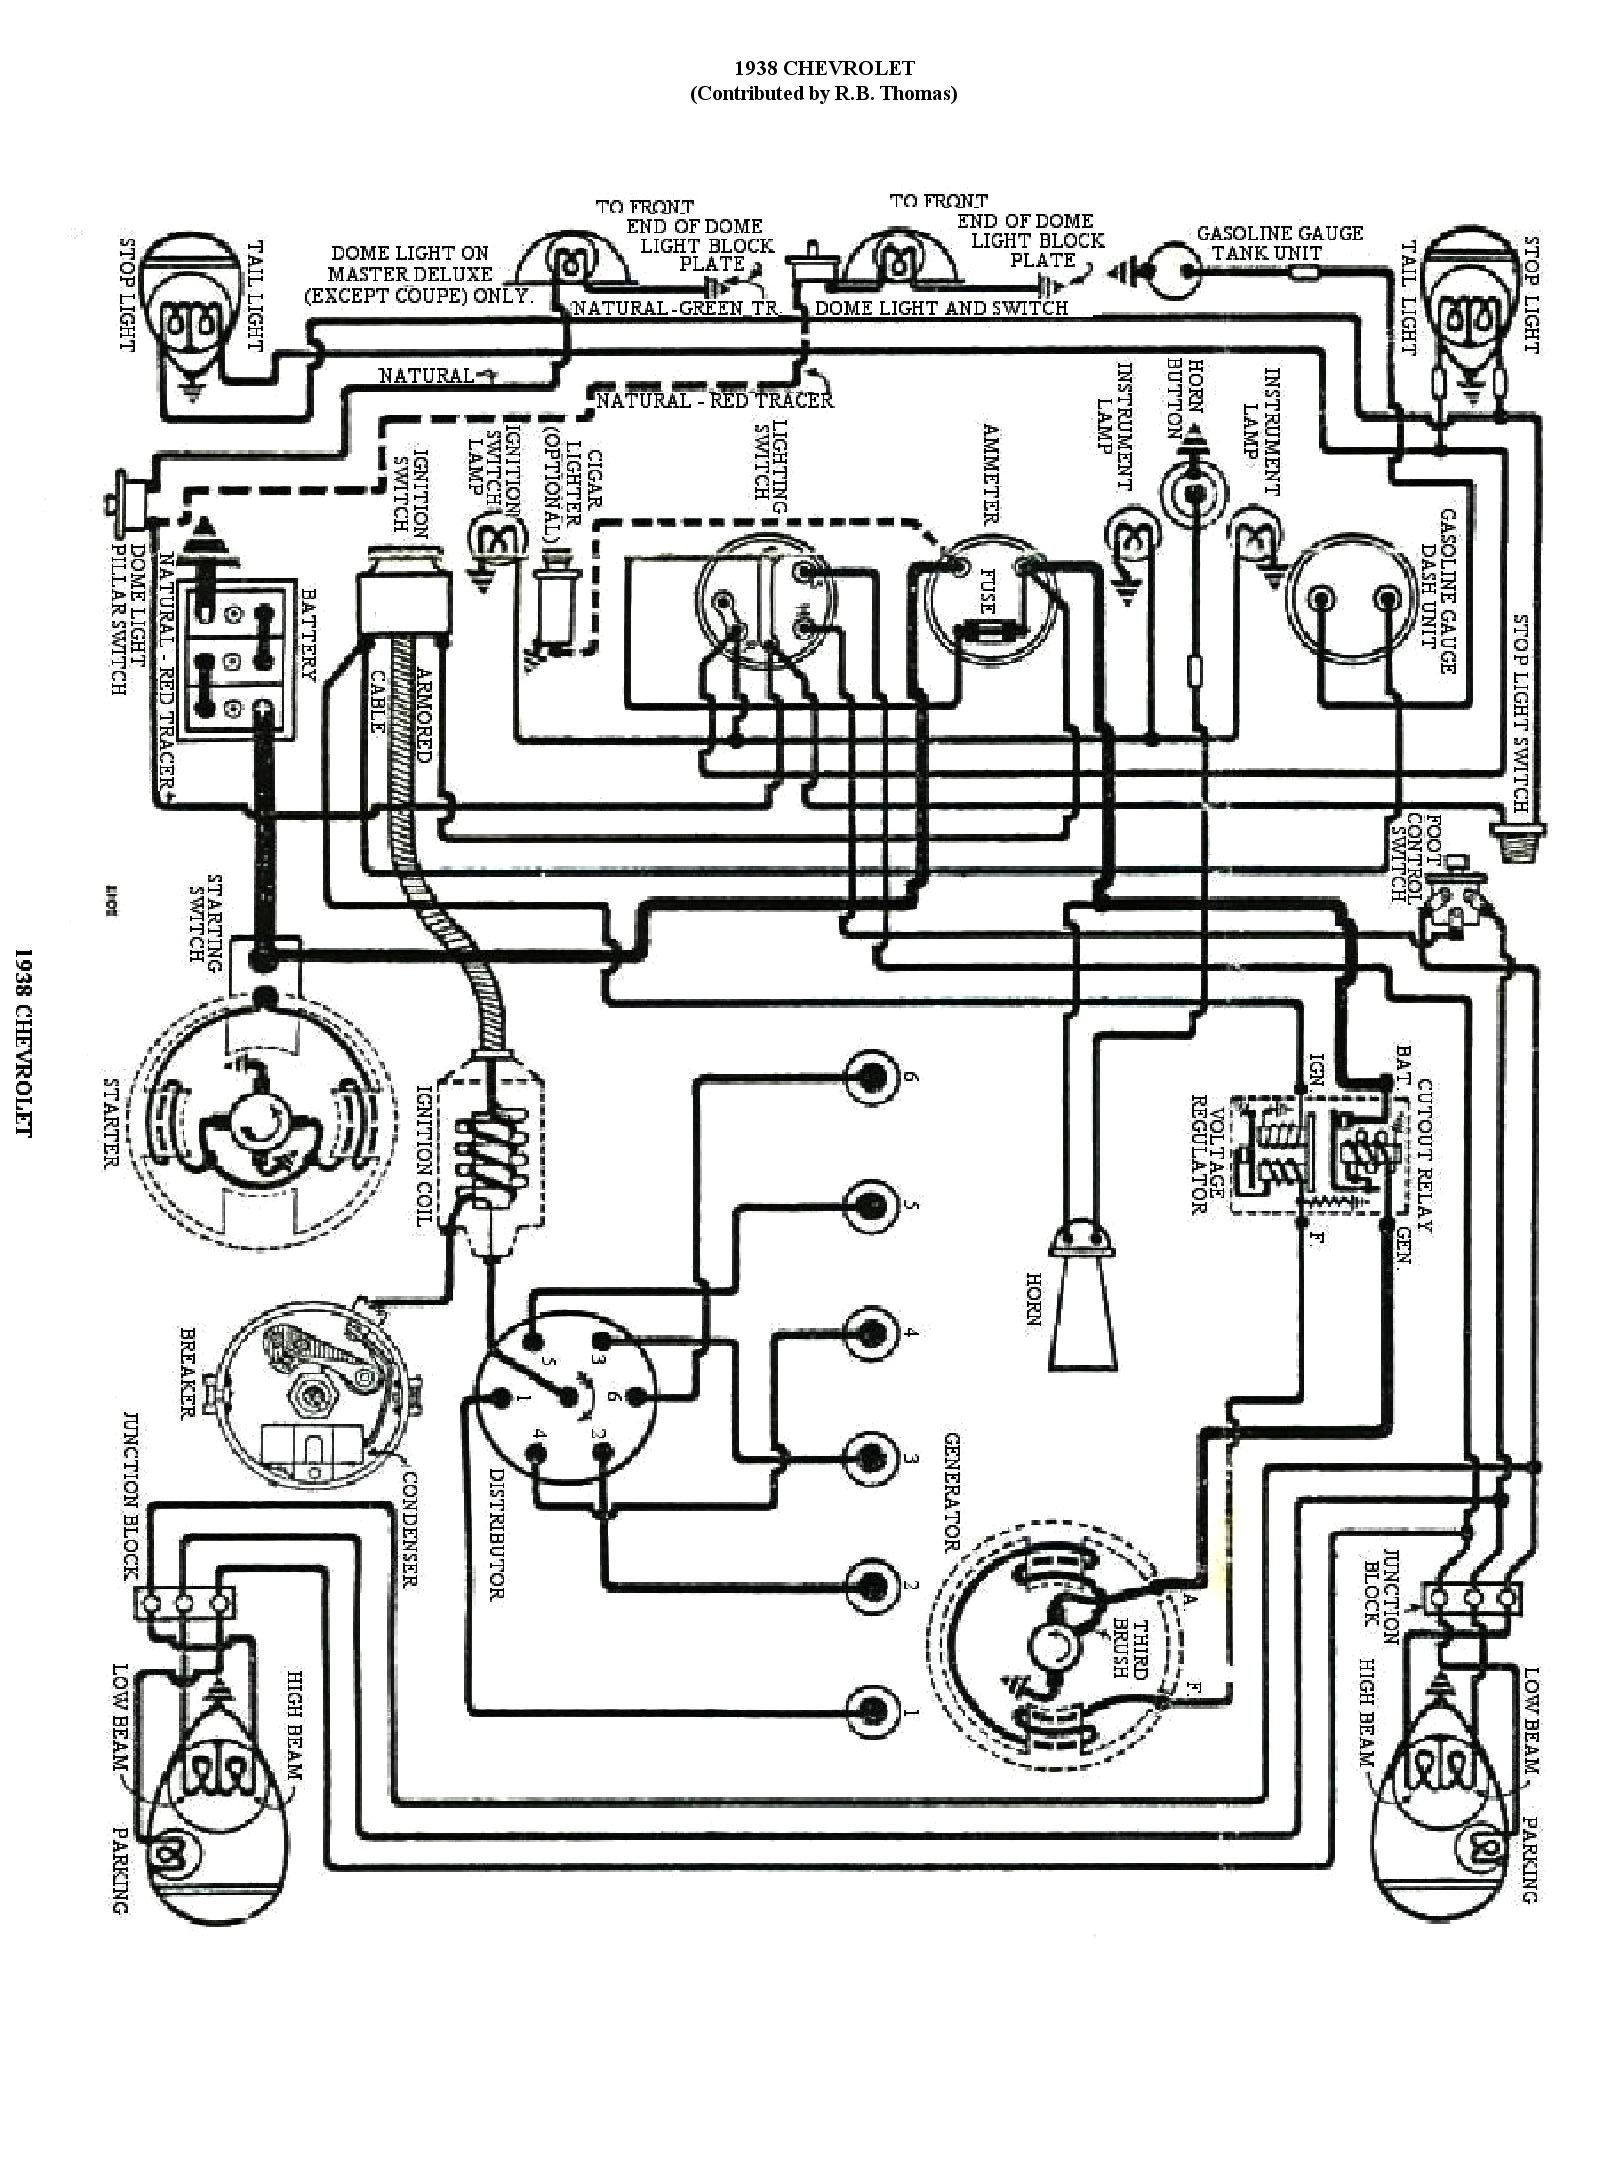 Chevy Wiring Diagrams 1956 Bel Air Fuse Box Location 1938